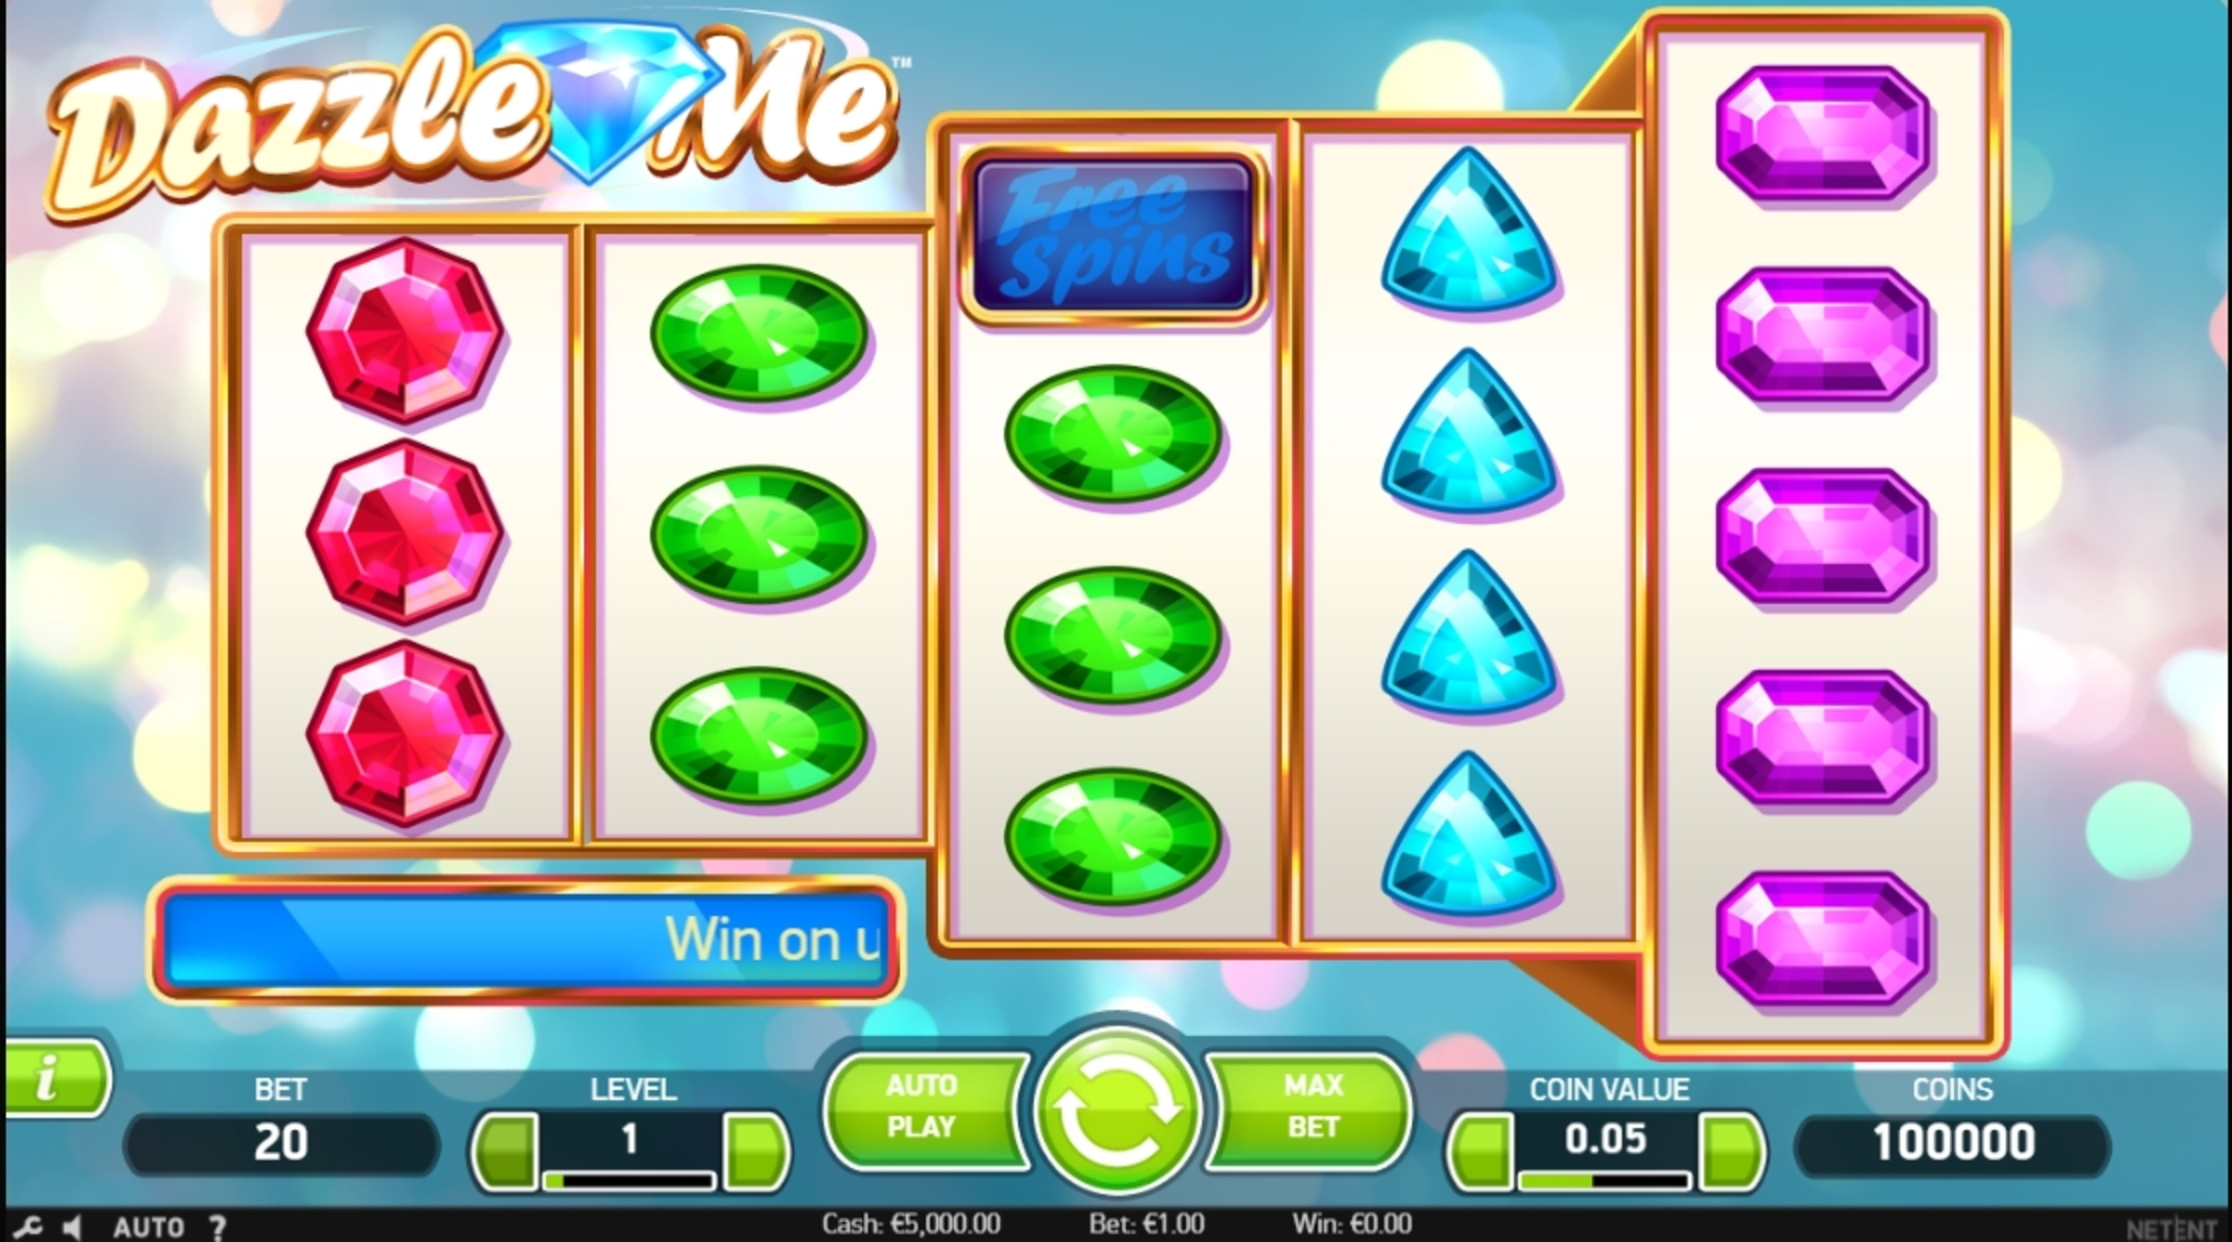 Reels in Dazzle Me Slot Game by NetEnt